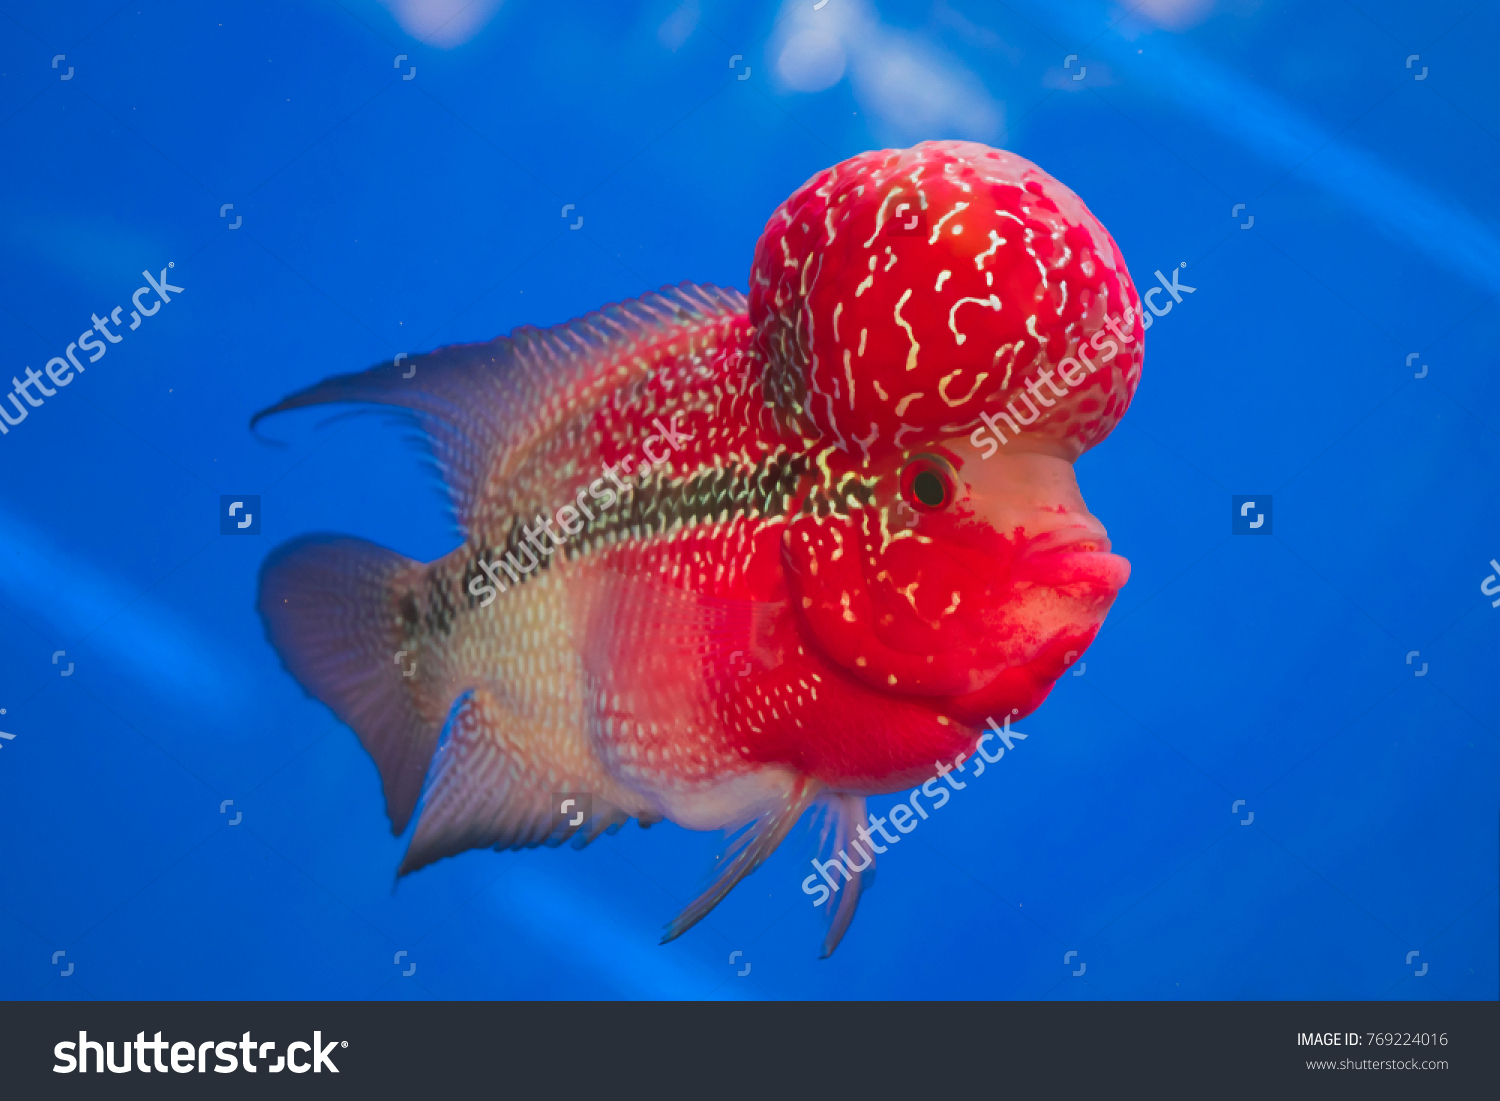 Colorful Red Fish Flowerhorn Cichlids Beautiful Stock Photo (Royalty ...